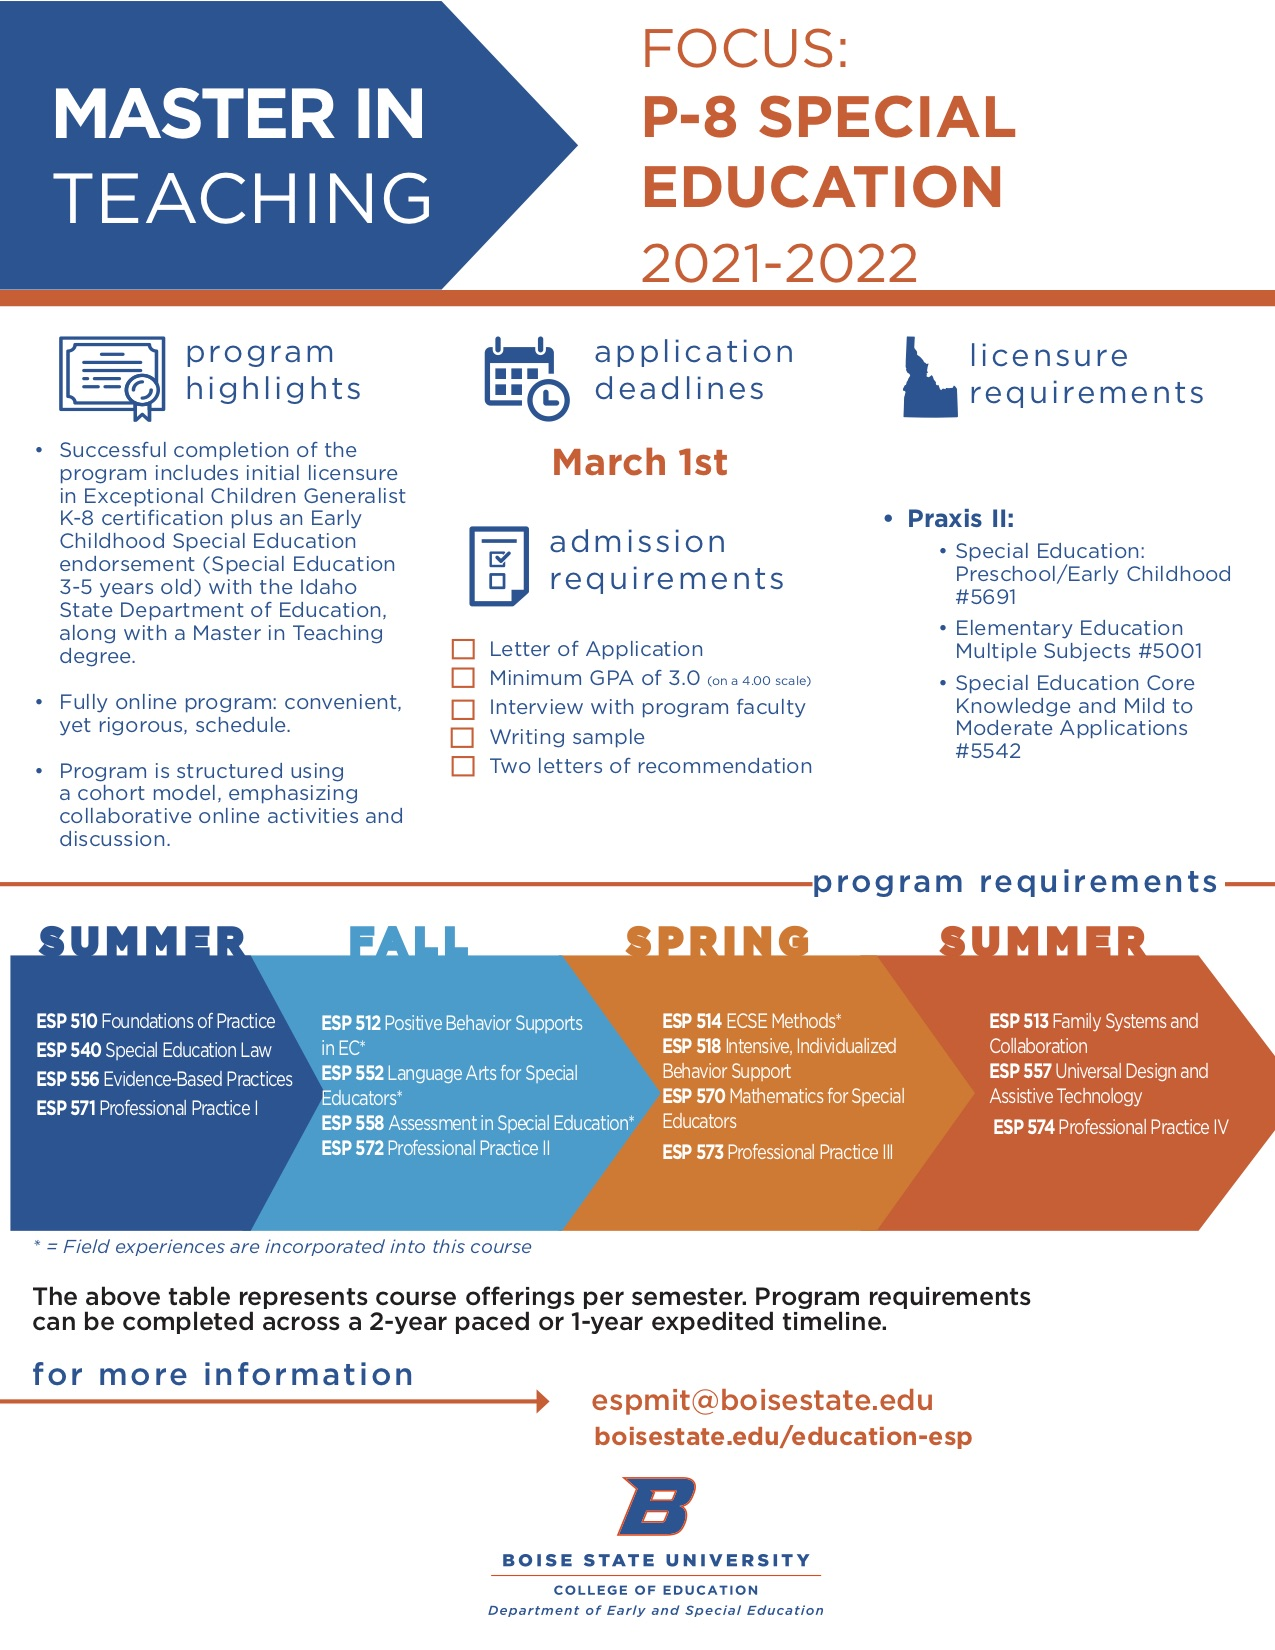 Visual Advising Guide for Master in Teaching Focus:P-8 Special Education 2021-2022